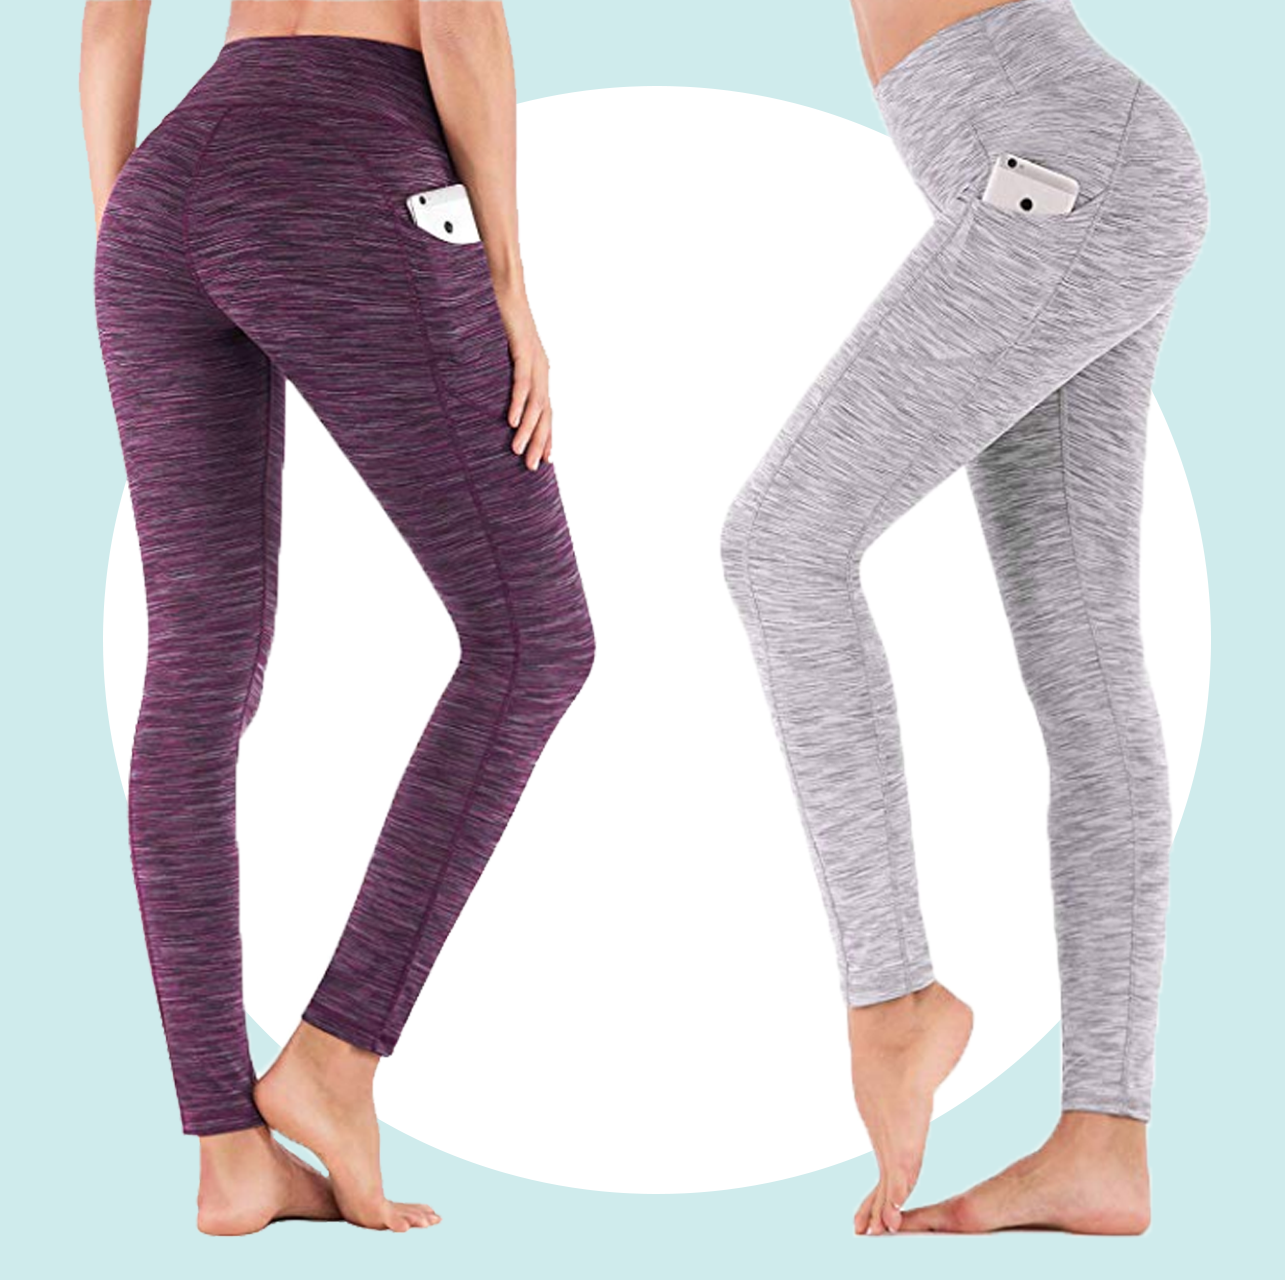 These $15 IUGA Yoga Pants Have More Than 1,000 Nearly Perfect Reviews on Amazon